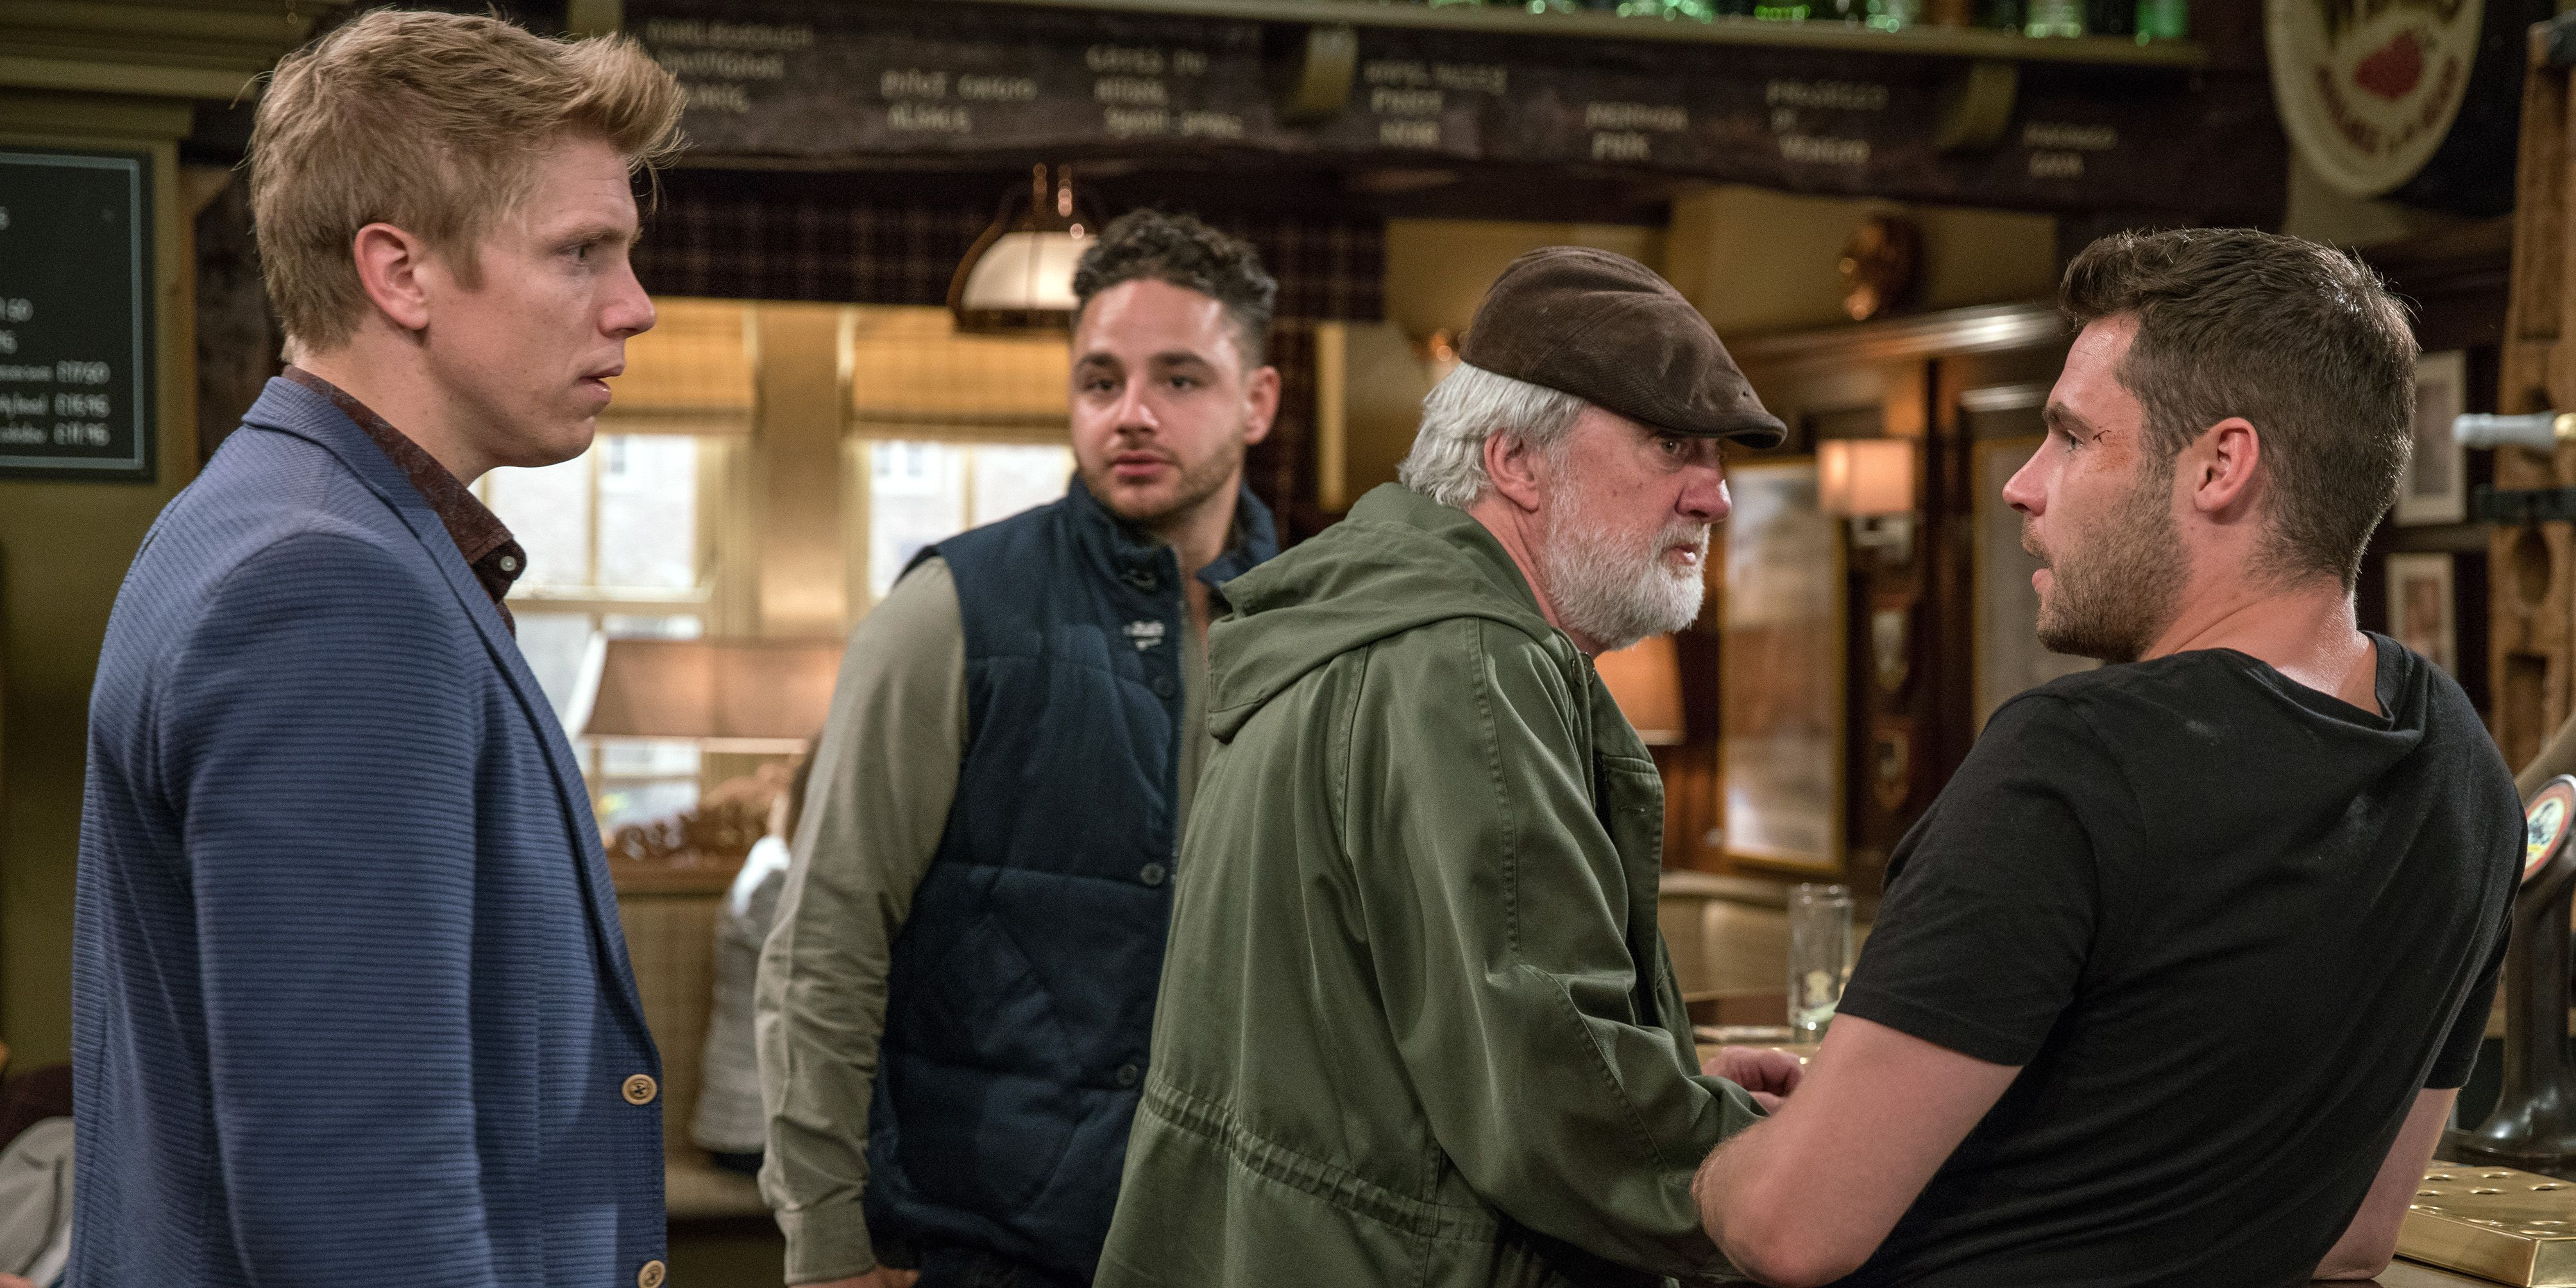 Robert Sugden shows his concern for Aaron Dingle in Emmerdale